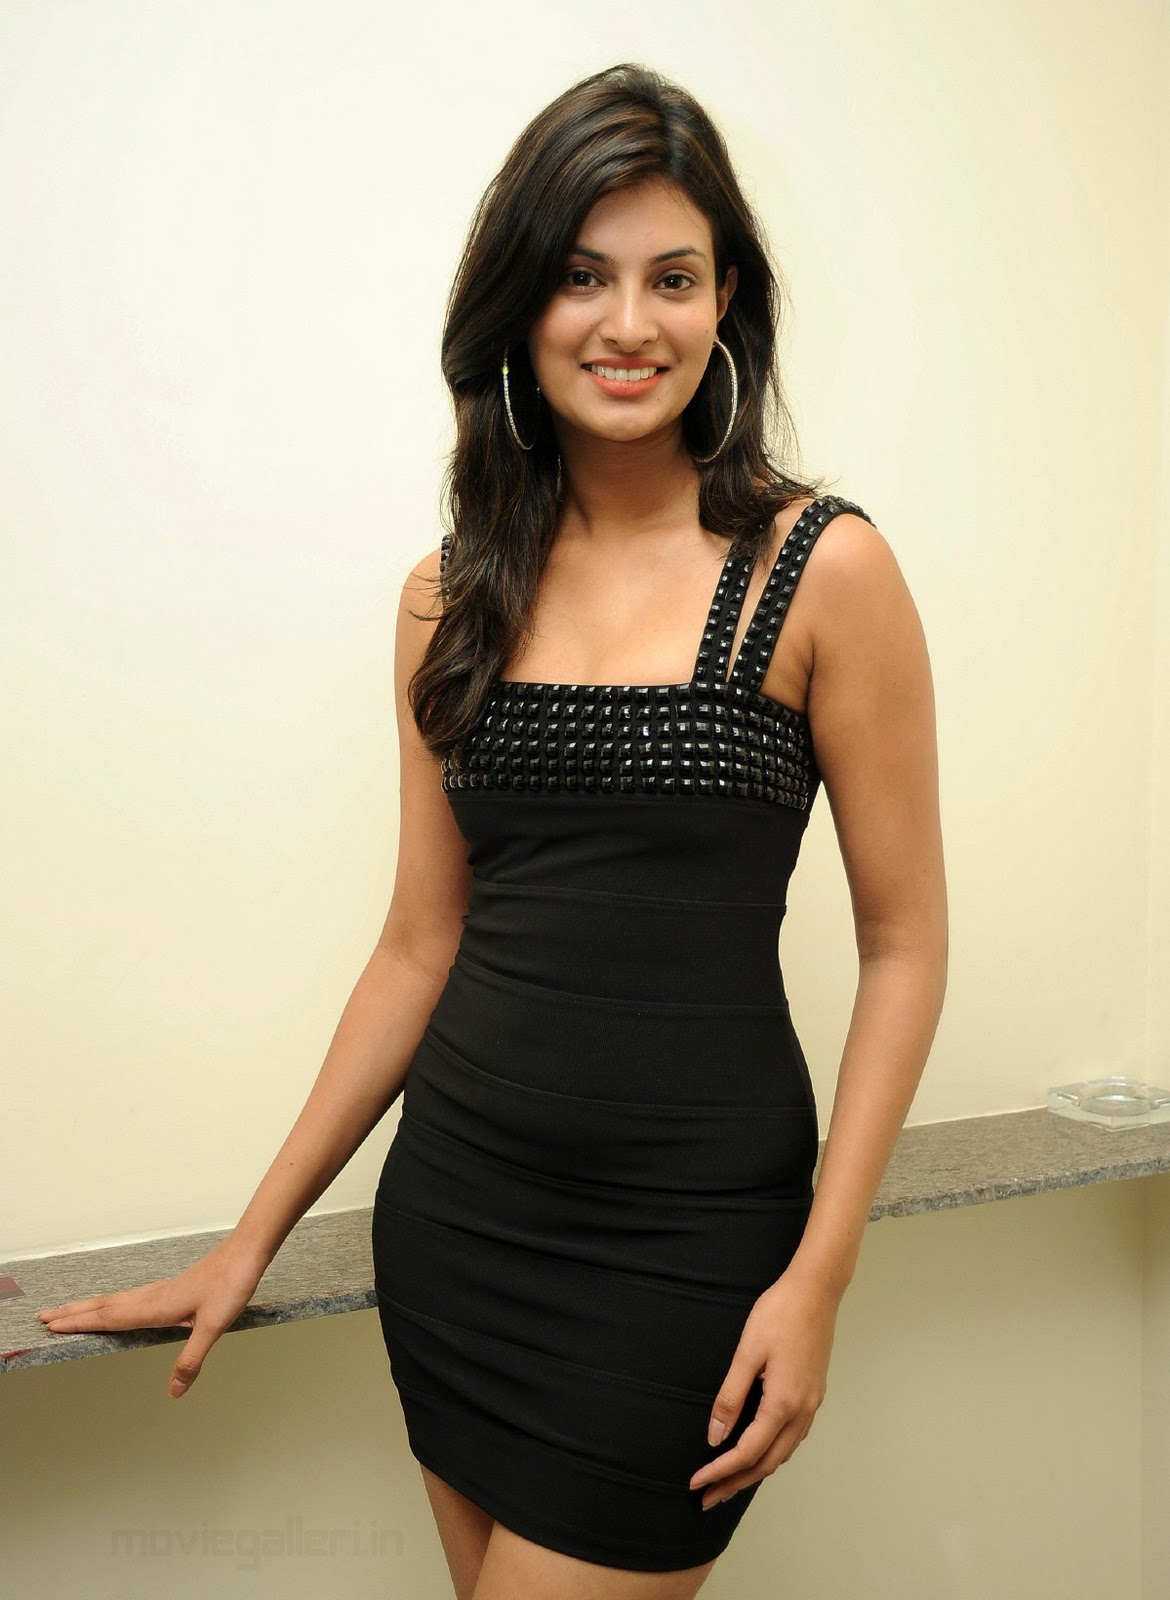 Download this Sayali Bhagat Hot... picture